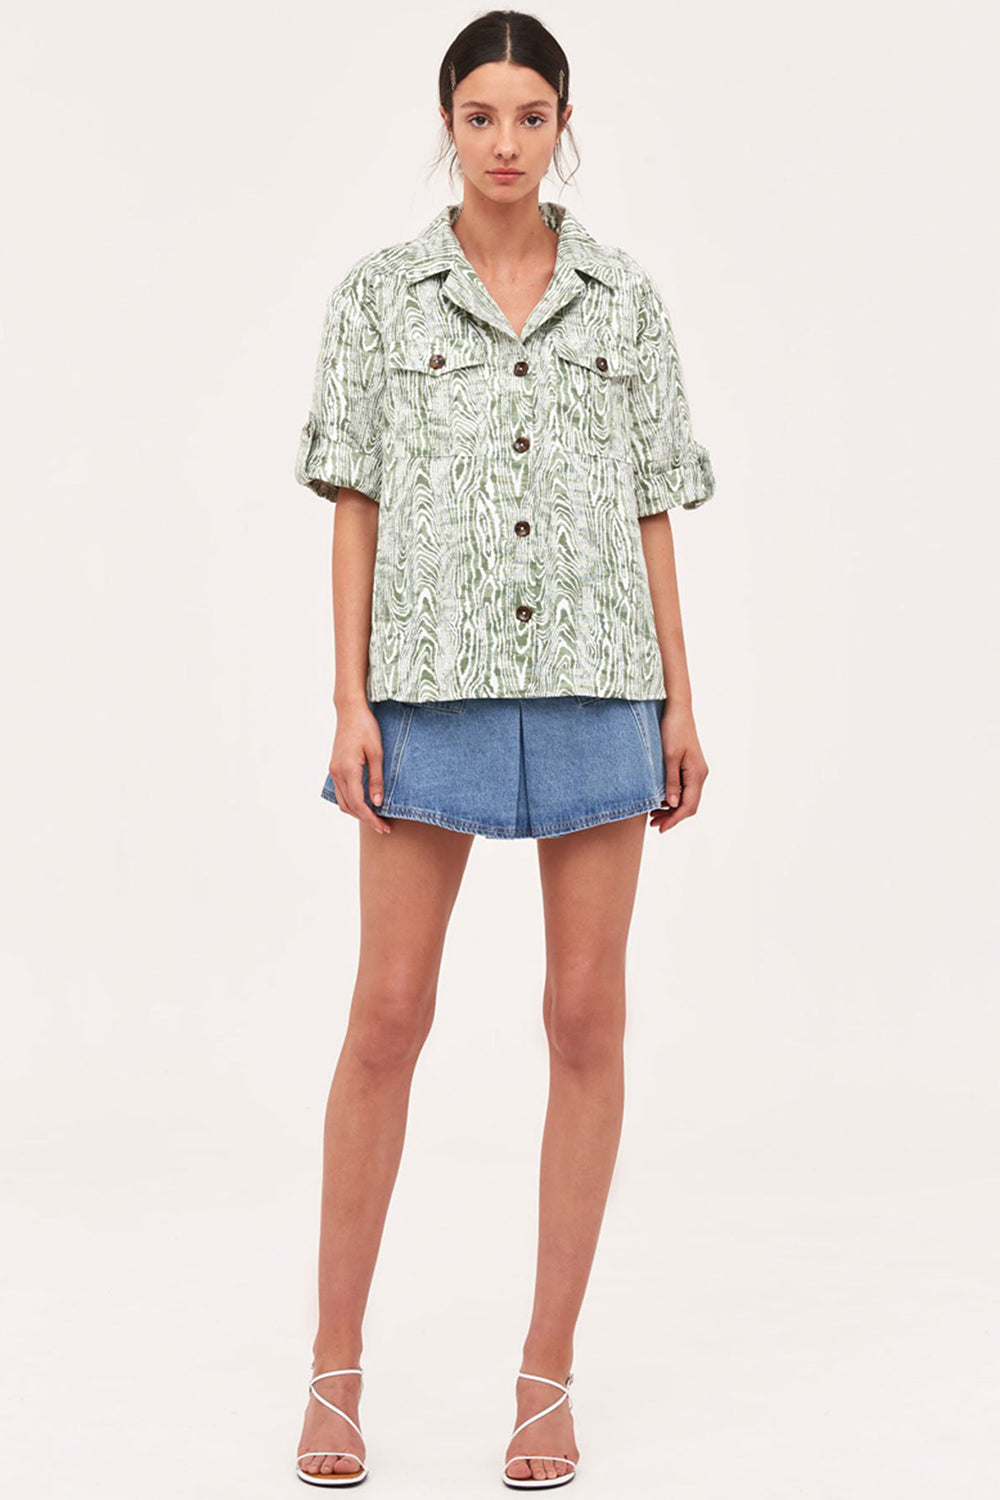 C/MEO Collective / Energised Shirt / Ivy